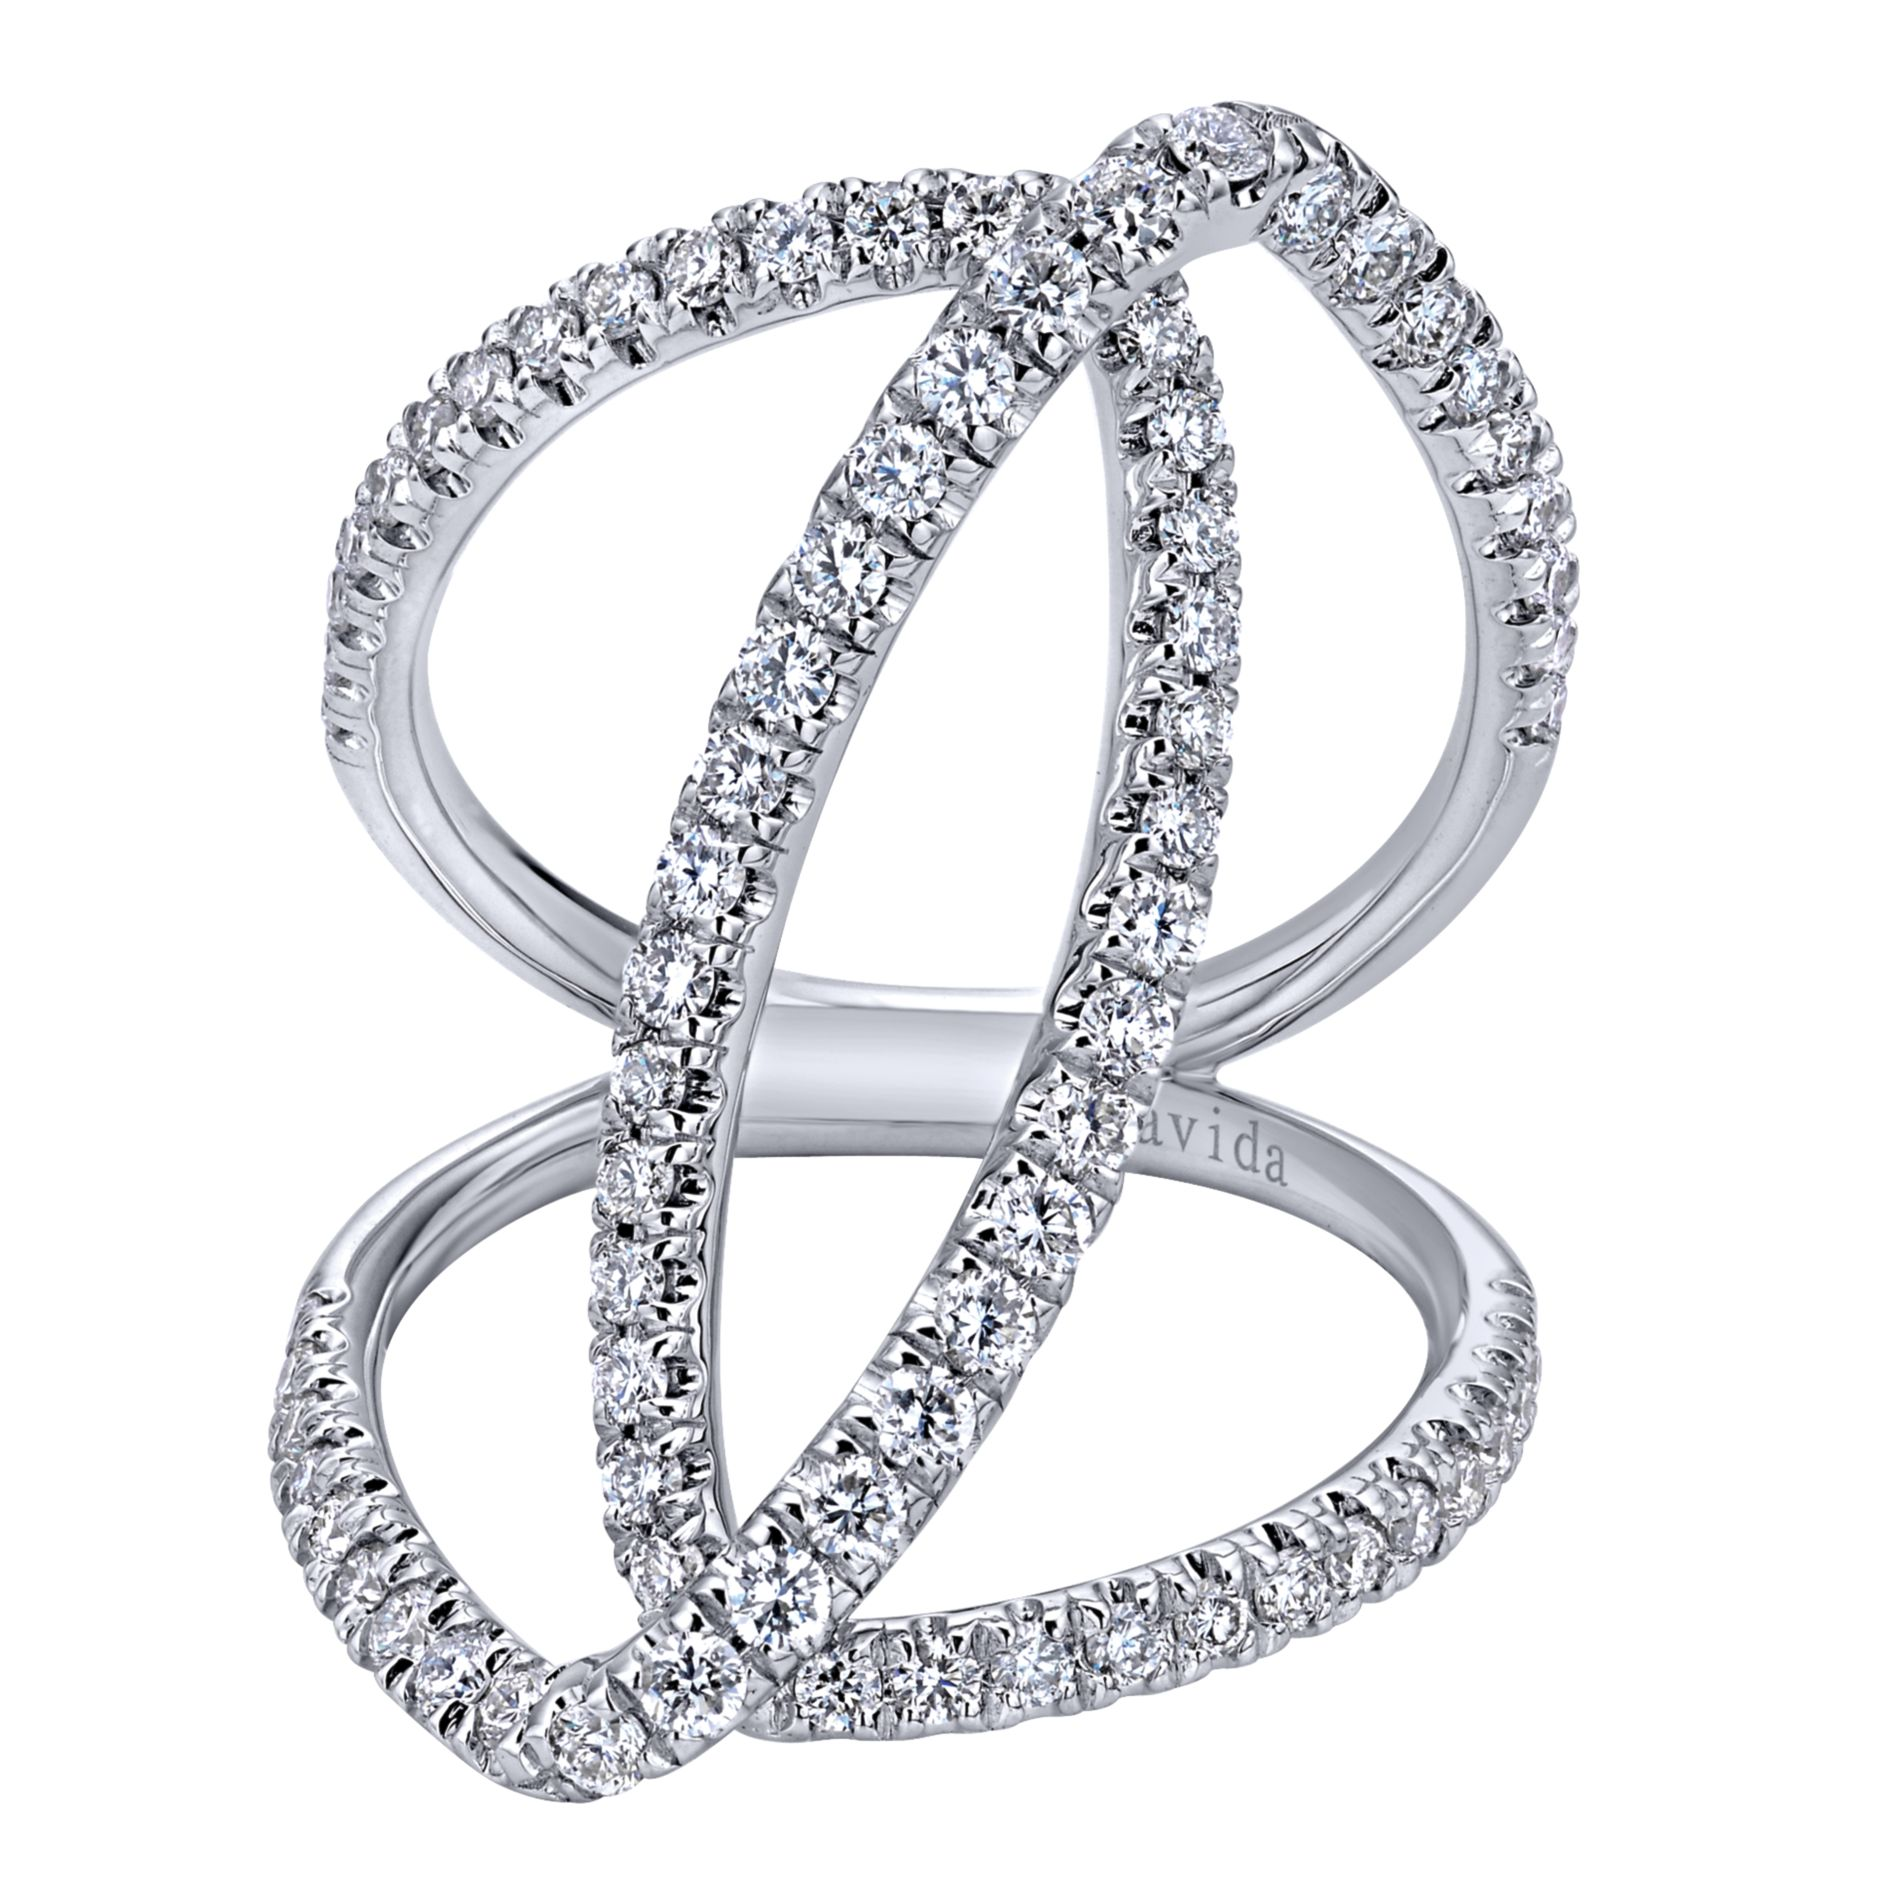 WHITE GOLD WIDE BAND DIAMOND LADIES RING by Gabriel & Co